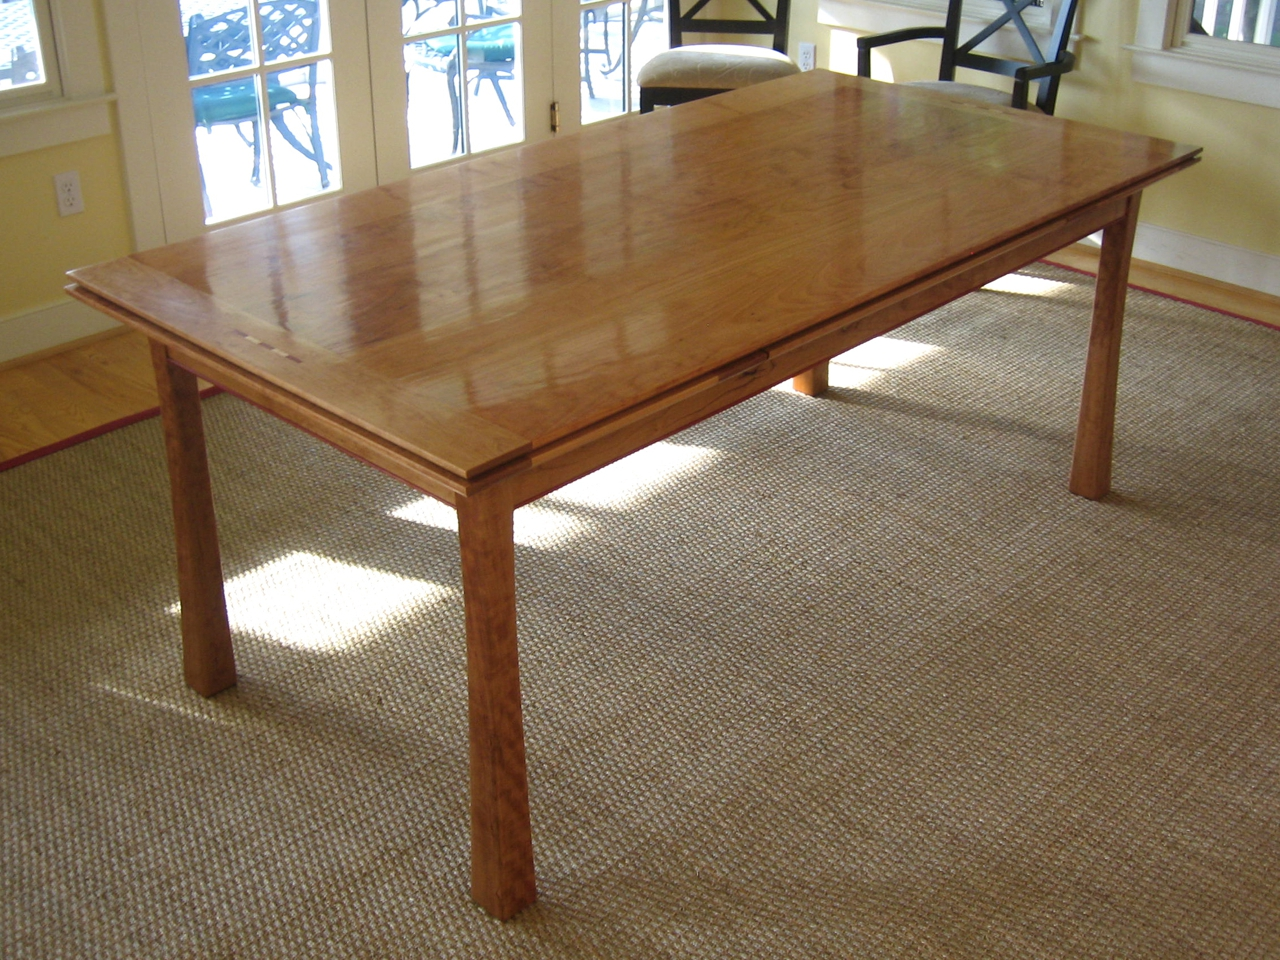 7s0qr9eRK7siF5rMoMHQ_Dutch-Pull-Out-Dining-Table-by-Joseph-Murphy-Furniture-Maker-at-CustomMade.com_.jpg